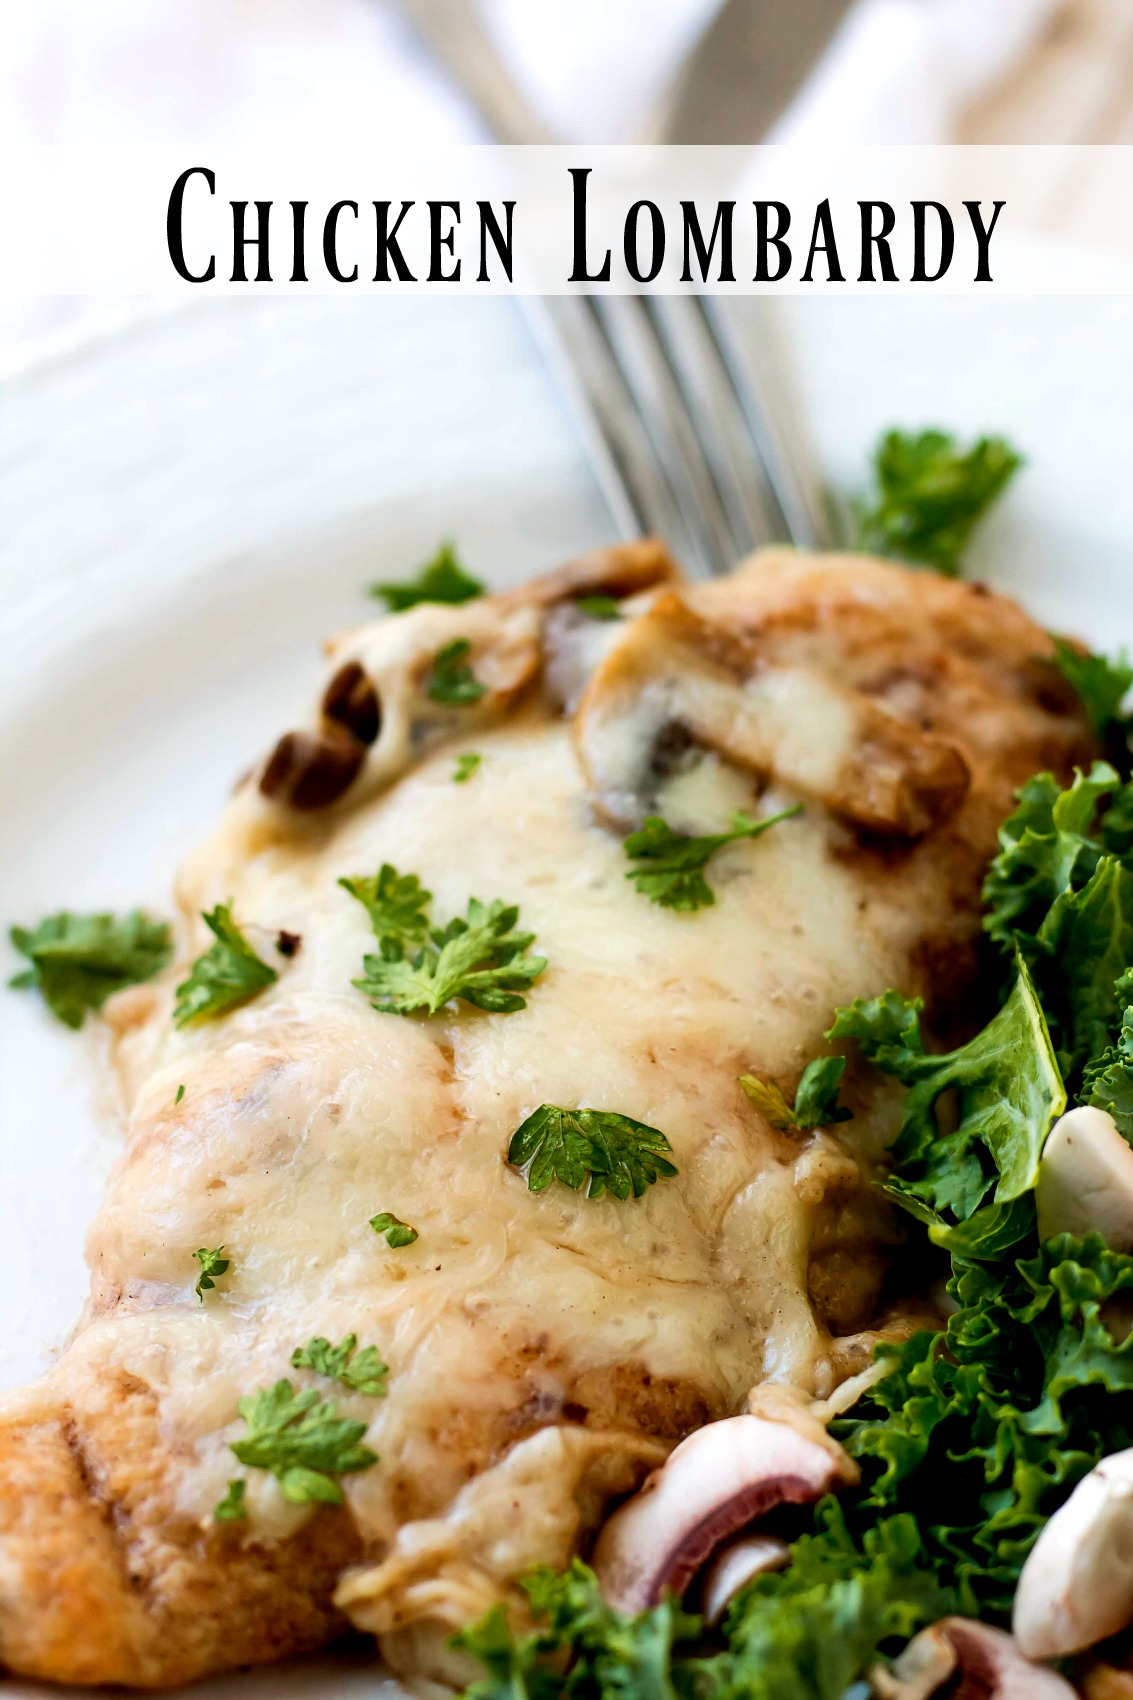 Chicken Lombardy Bunny S Warm Oven